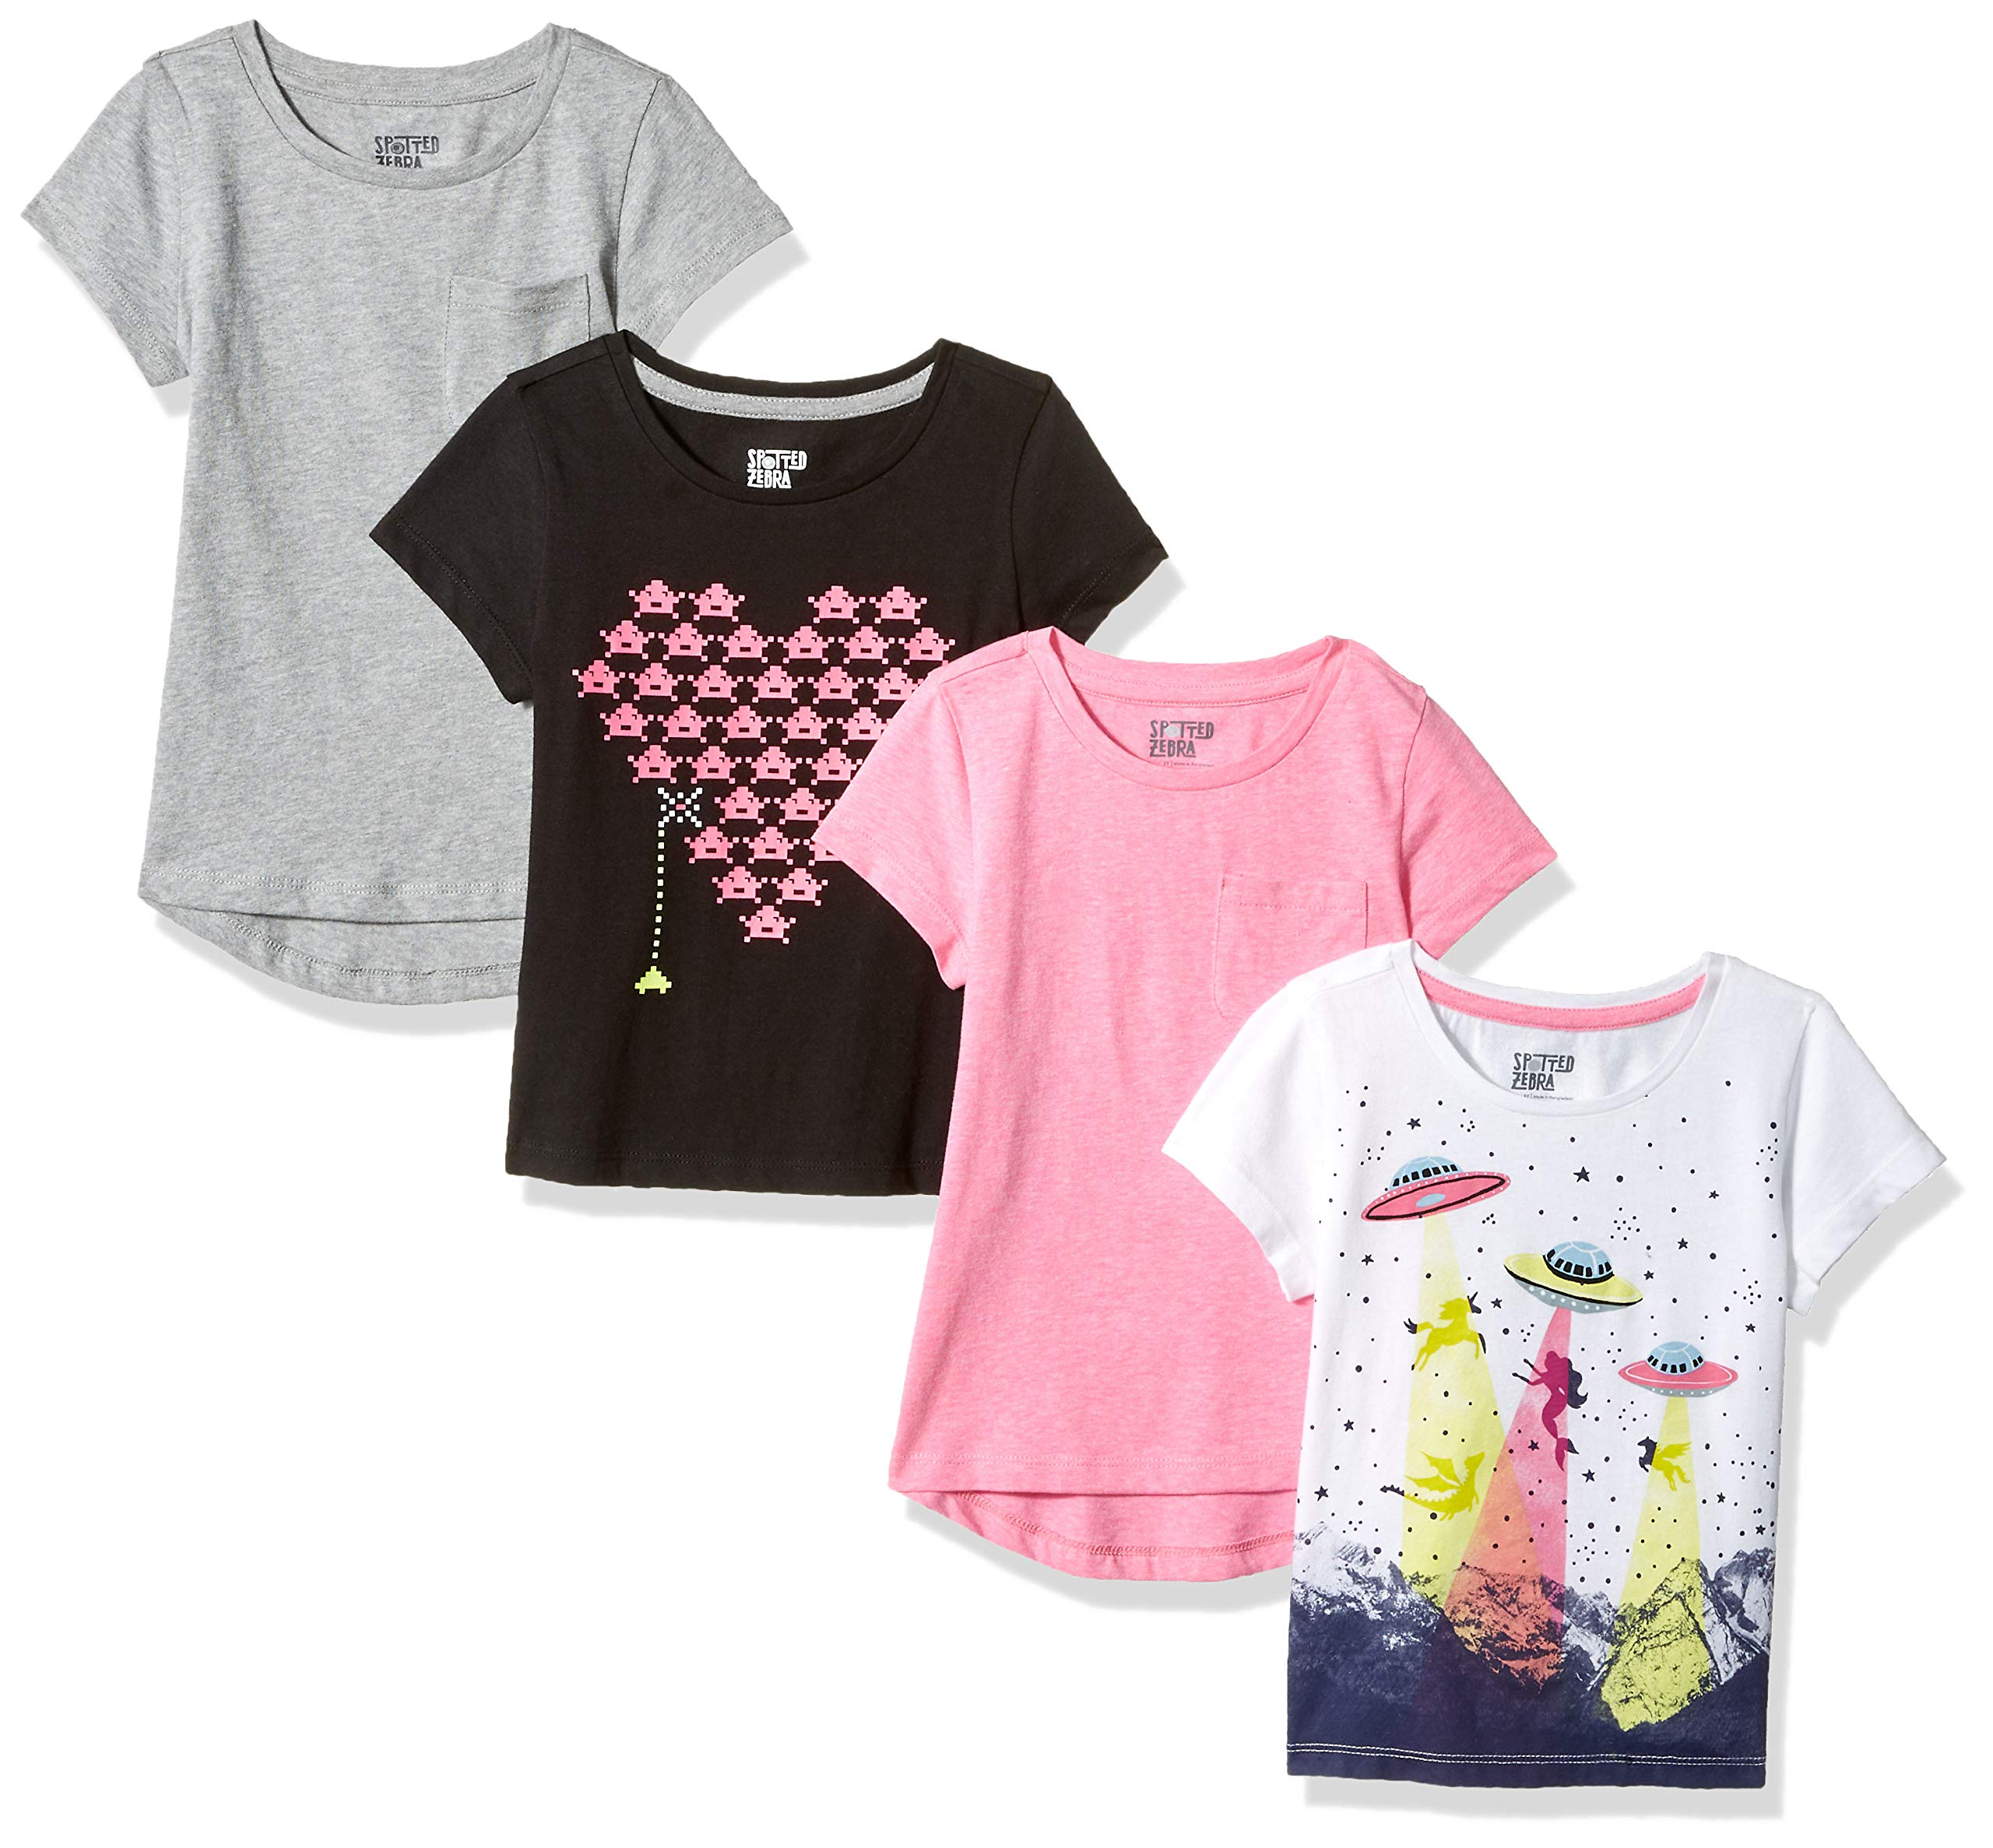 Spotted Zebra Little Girls' 4-Pack Short-Sleeve T-Shirts, Video UFO, Small (6-7) by Spotted Zebra